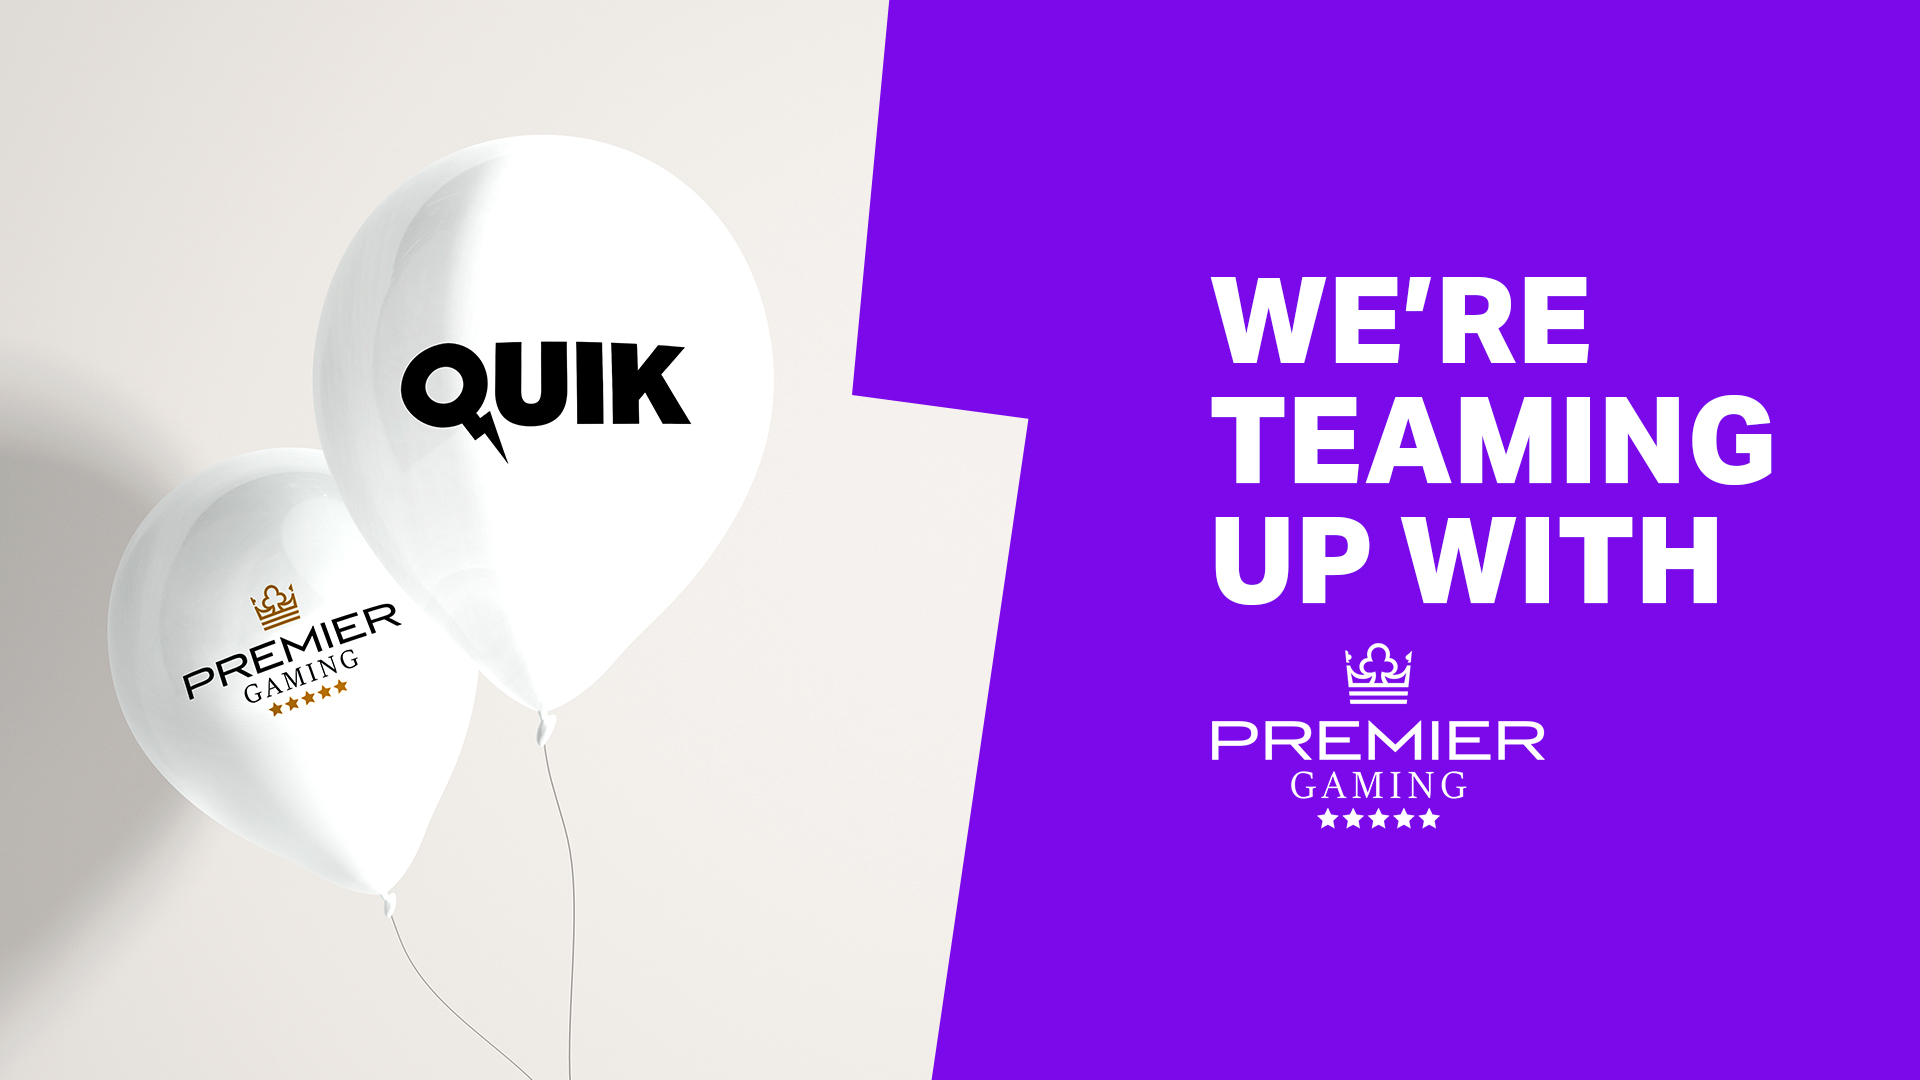 Quik seals agreement with Premier Gaming